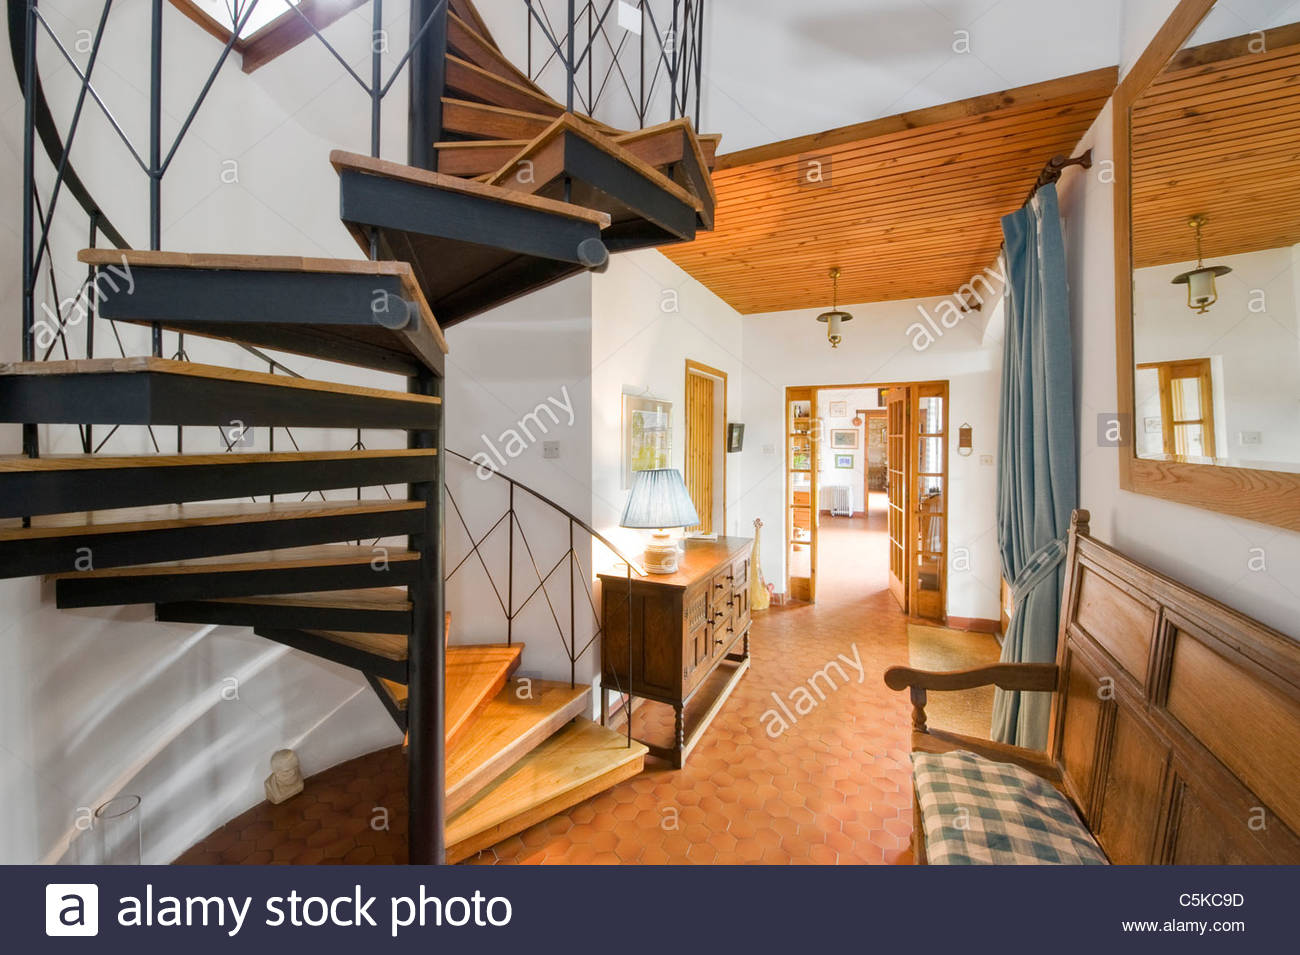 A Renovated Coach House Interior With Spiral Staircase Stock Photo